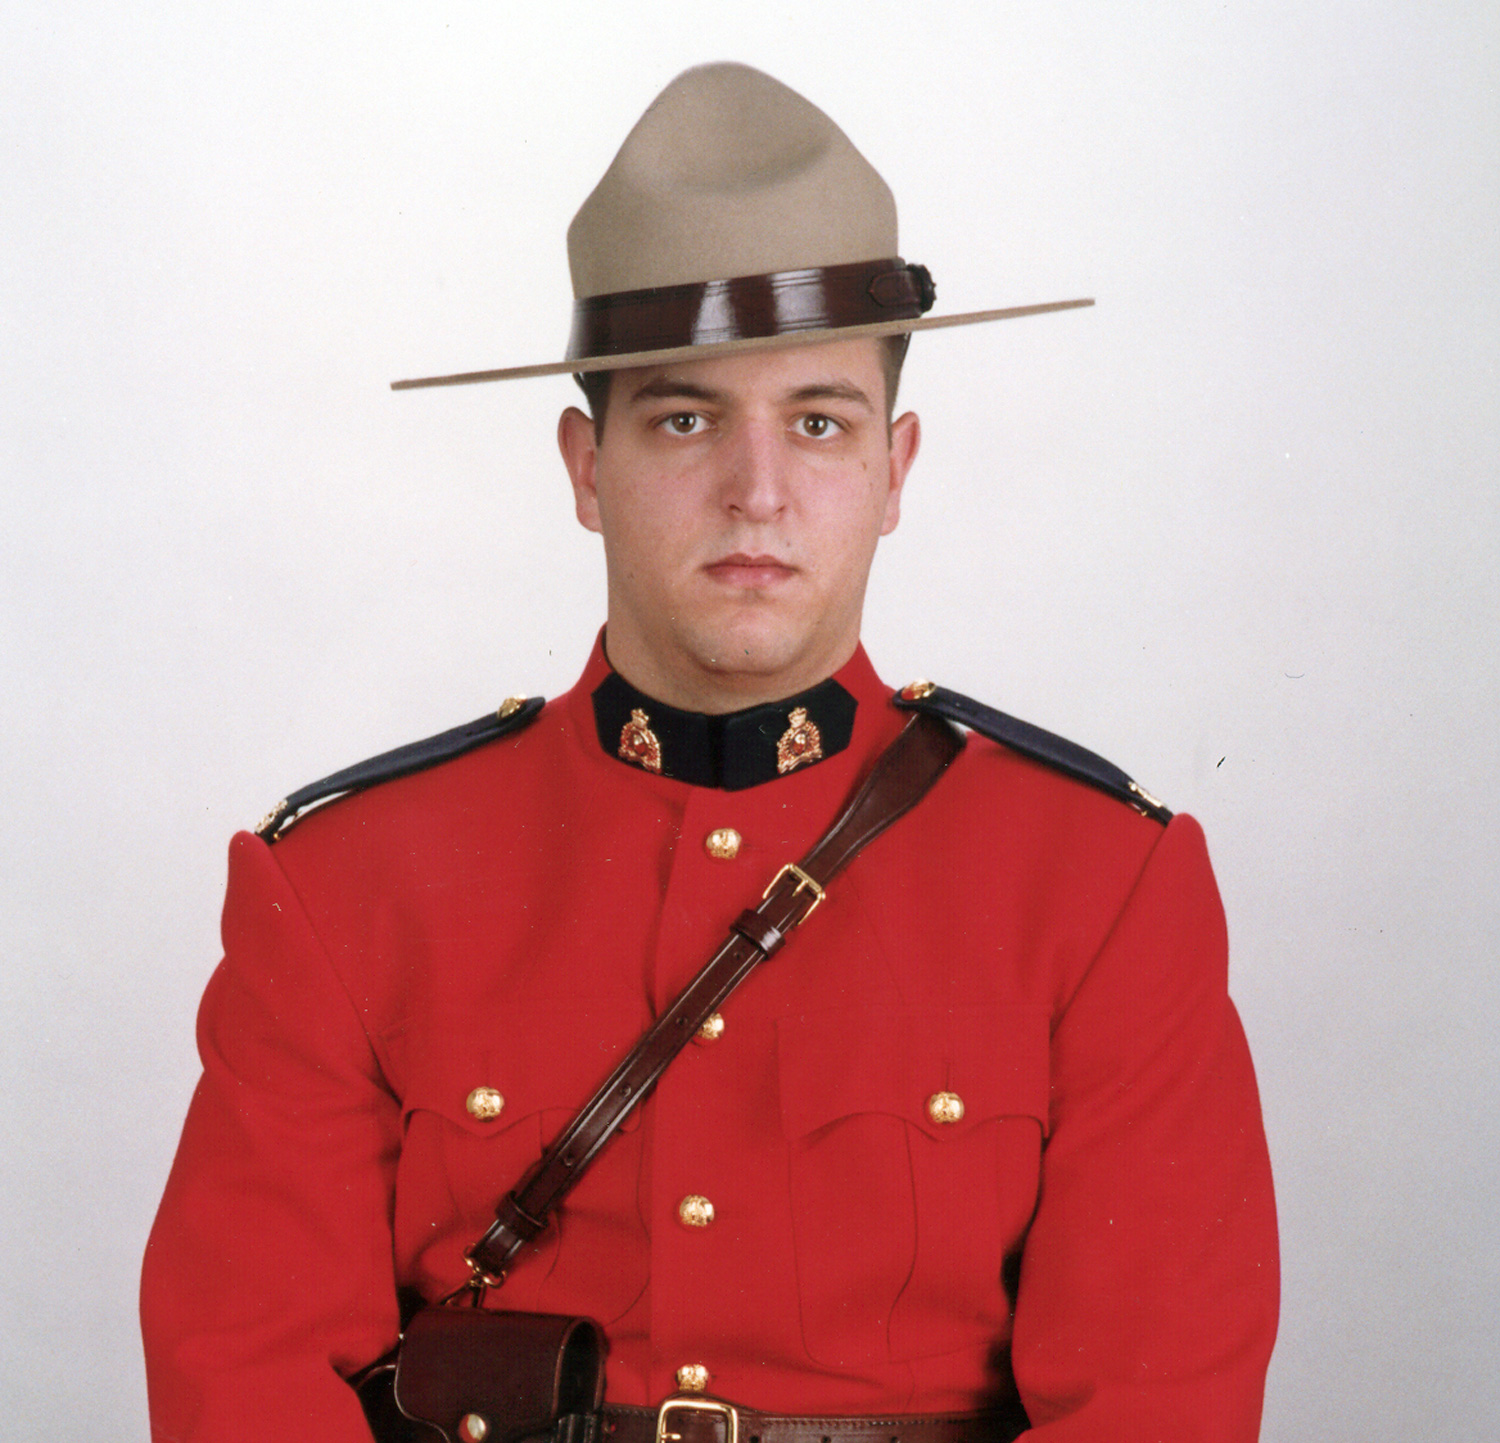 Constable Marc Joseph Denis Bourdages– © Her Majesty the Queen in Right of Canada as represented by the Royal Canadian Mounted Police